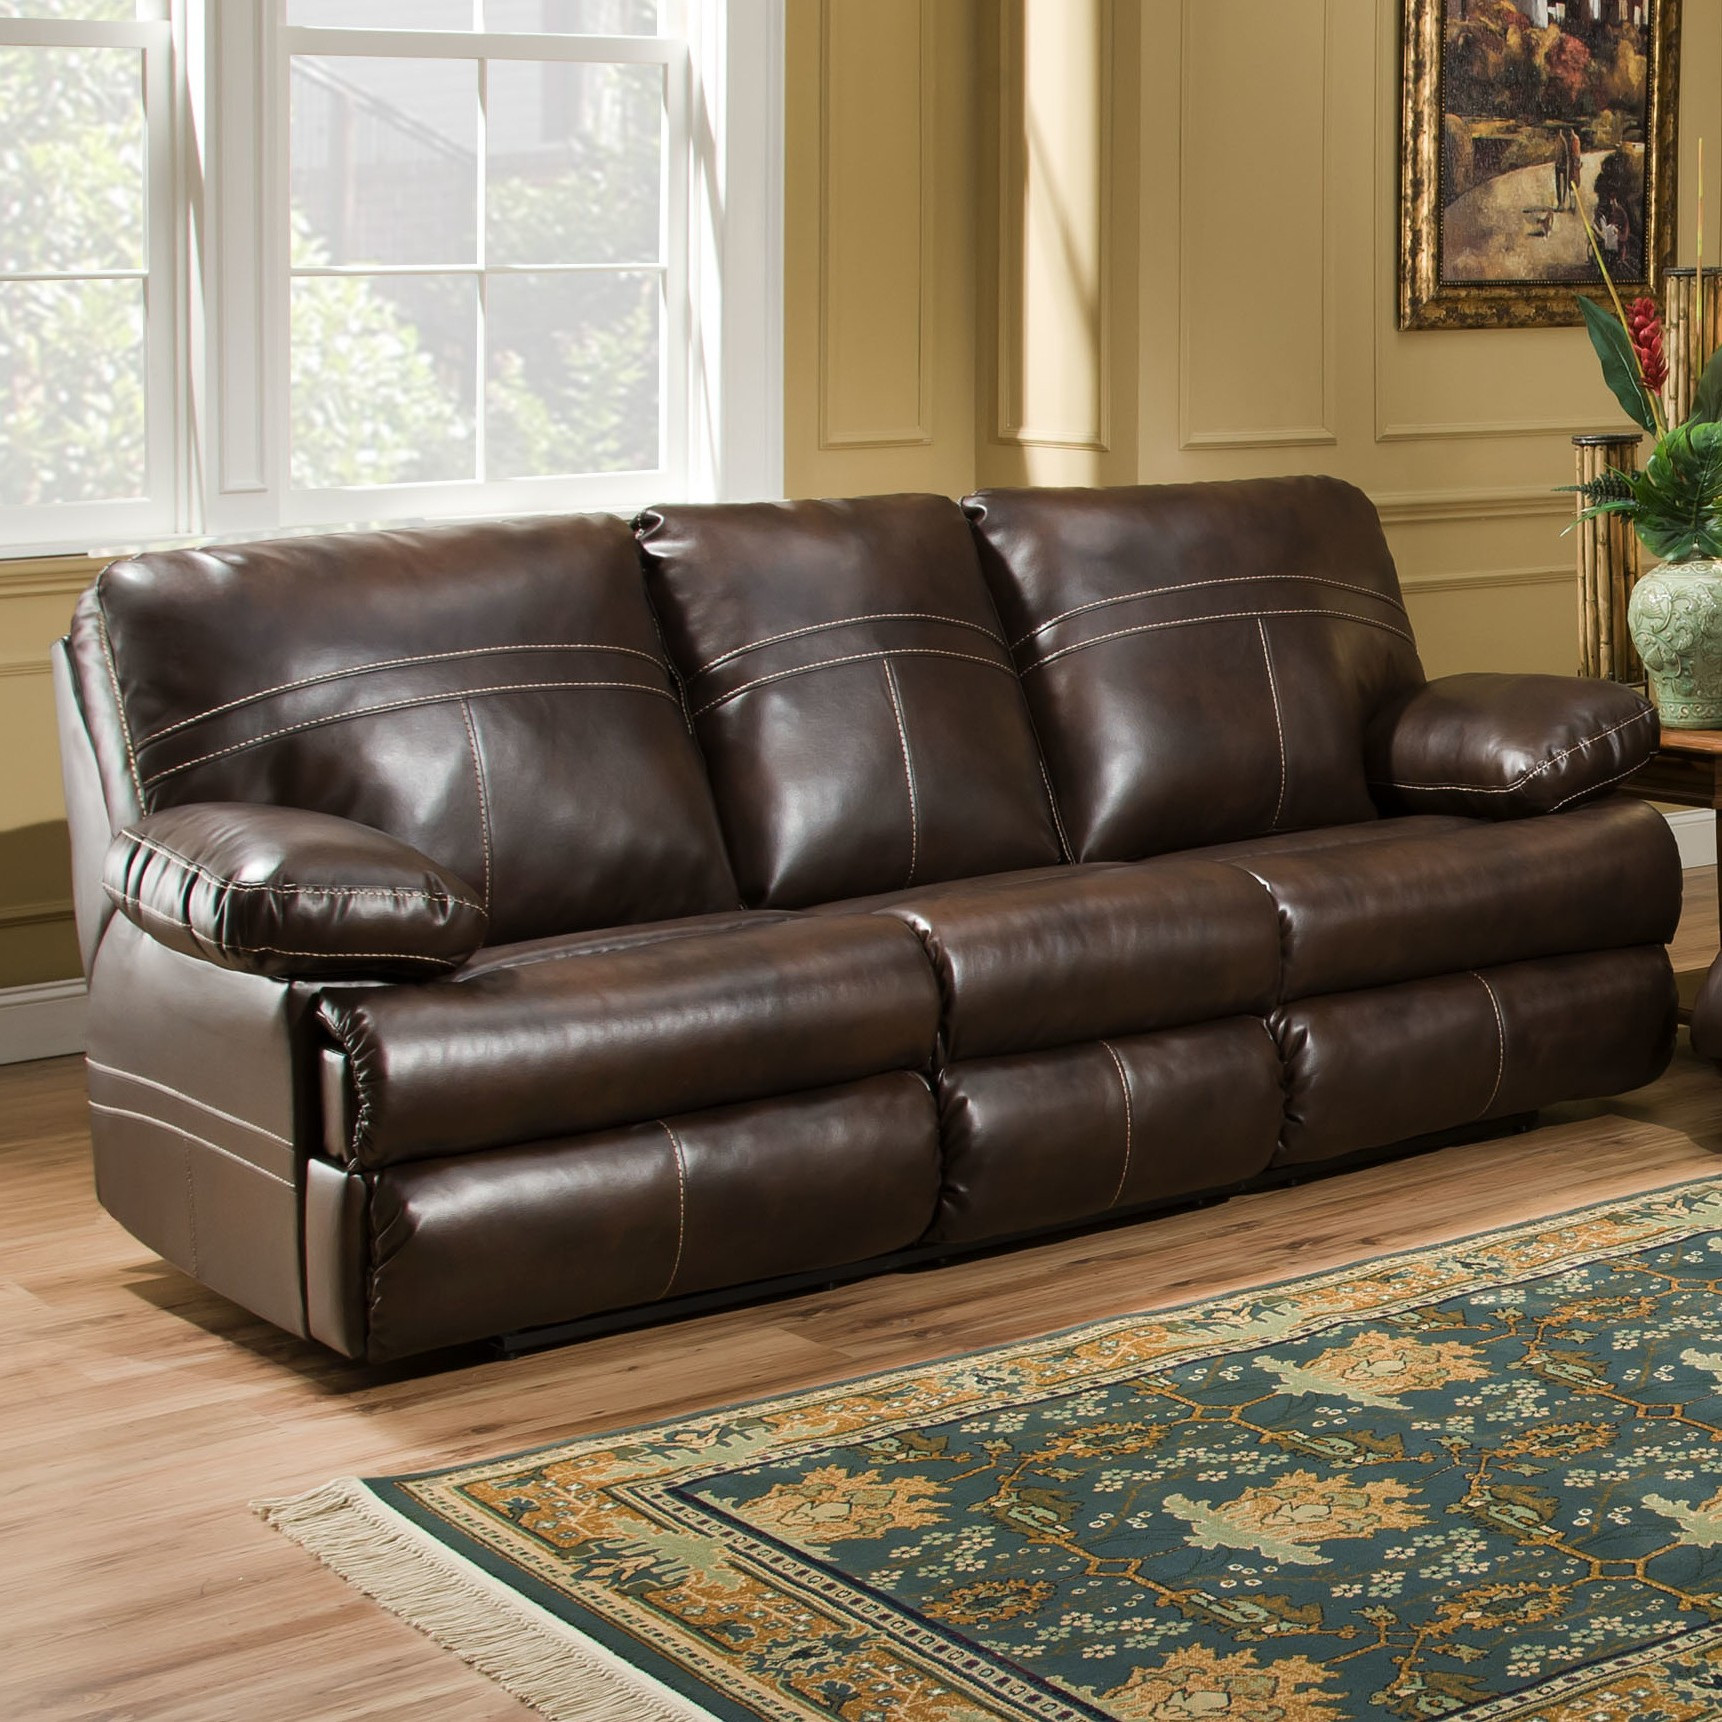 Best ideas about Leather Sofa Sleeper . Save or Pin Ashley Leather Sleeper Sofa Ashley Furniture Leather Now.